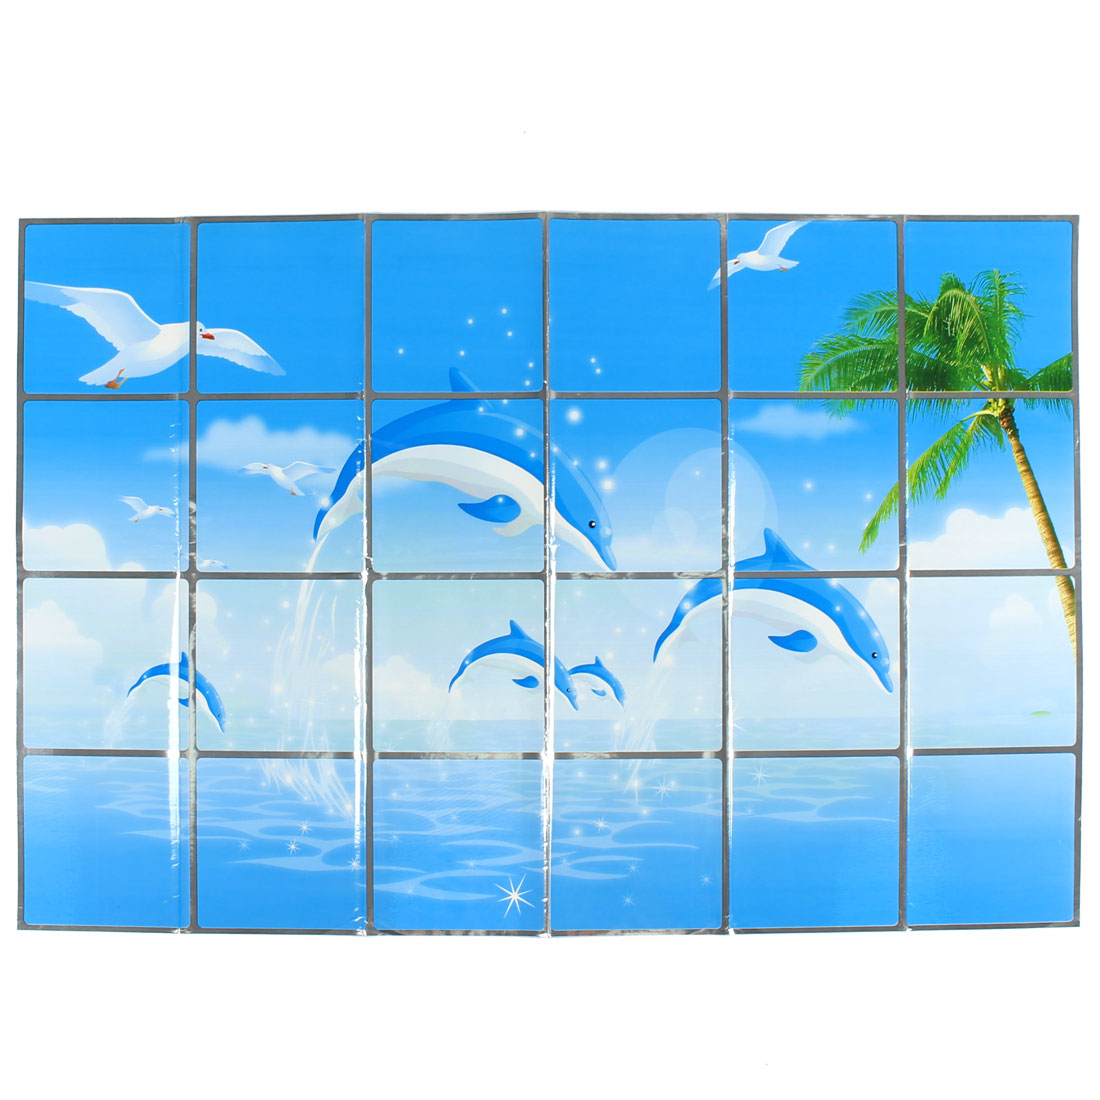 Kitchen Dolphins Pattern Removable Self-adhesive Oilproof Wall Window Sticker 90 x 60cm